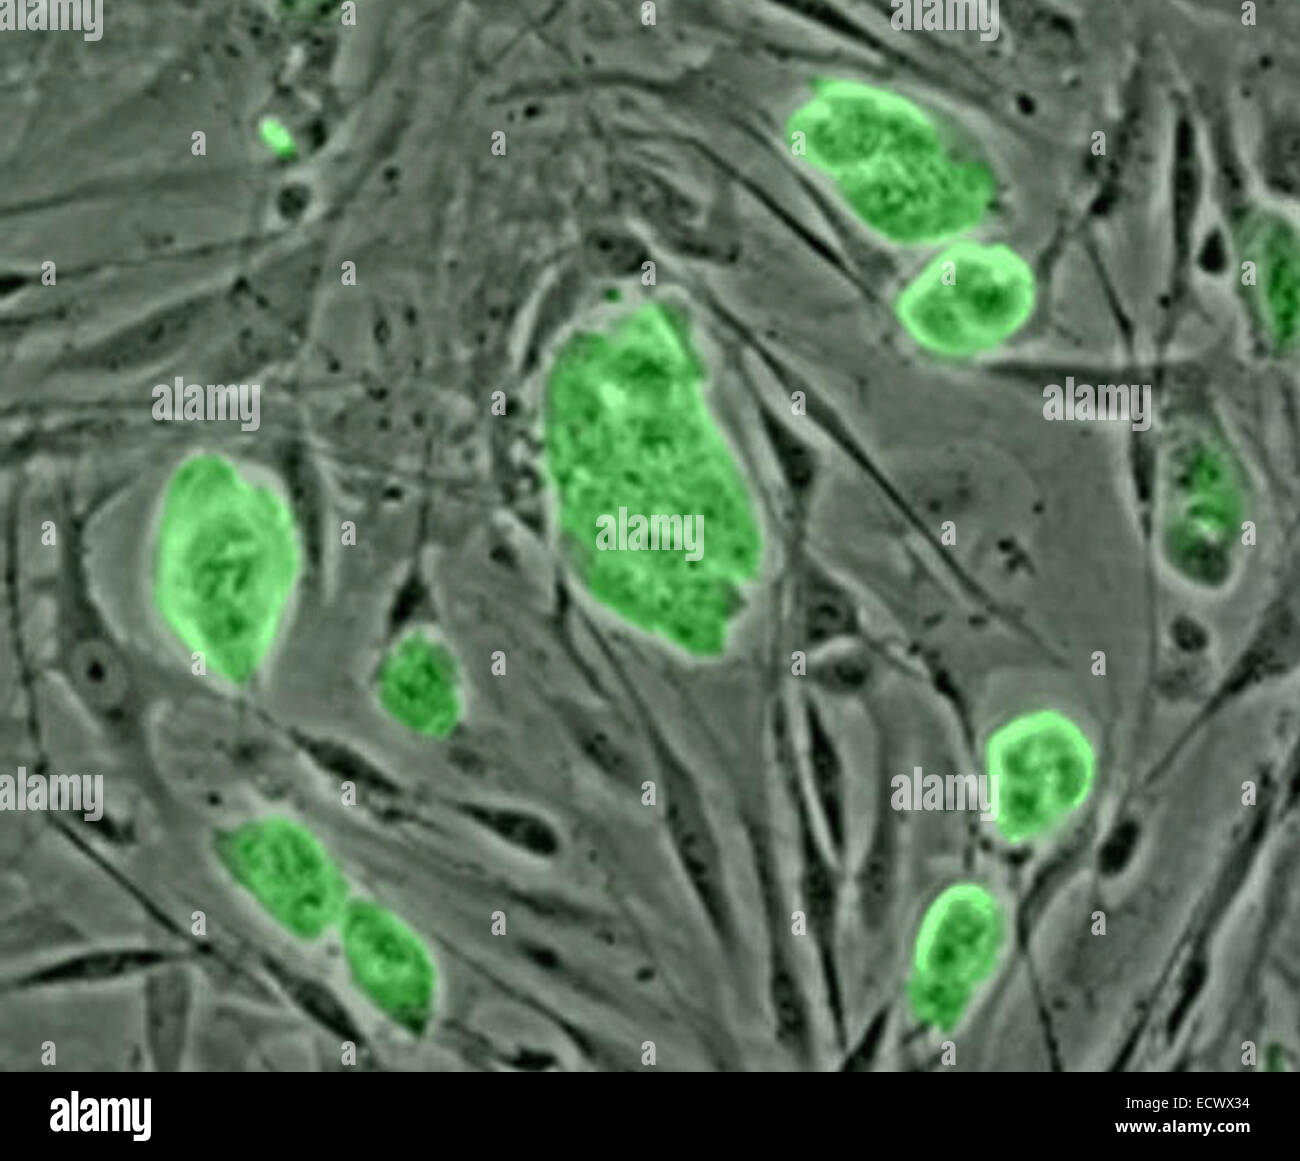 Mouse embryonic stem cells. - Stock Image